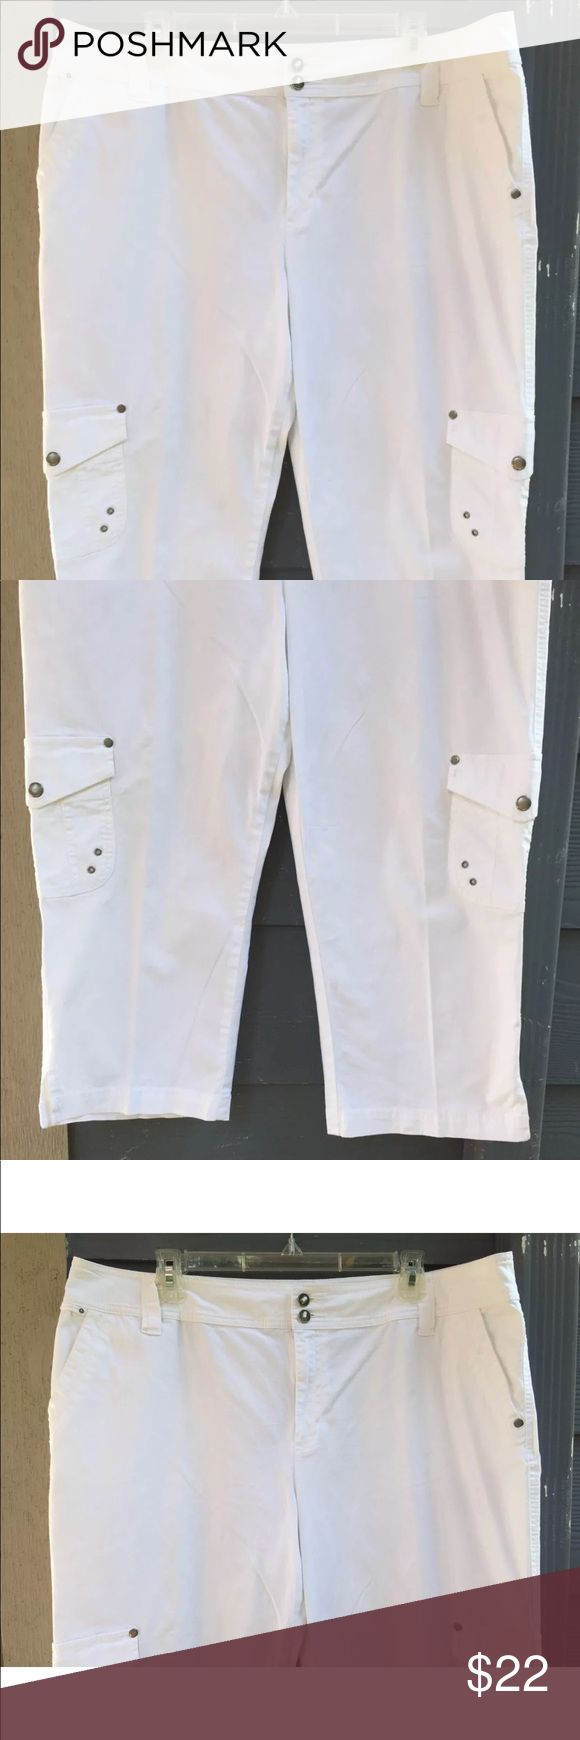 """TRIBAL WOMEN'S CAPRIS CARGO PANTS STRETCH SZ 16 TRIBAL WOMEN'S CAPRIS CROPPED CARGO PANTS WHITE STRETCH 6 POCKETS SIDE SLITS SIZE 16   NEW WITHOUT TAG!  Measurements laying flat approximate: Waist 19 1/2"""", hips 23"""", crotch 13"""", inseam 22"""", length 32"""".  THESE GORGEOUS PANTS HAVE BEEN A DISPLAY AND TRIED ON AND OVERAL ARE IN GREAT CONDITION!  NOTE:  PLEASE REVIEW MEASUREMENTS CAREFULLY BEFORE PURCHASING THIS ITEM SINCE SIZES SOME TIMES ARE DIFFERENT FROM BRAND TO BRAND. Tribal Pants Capris"""